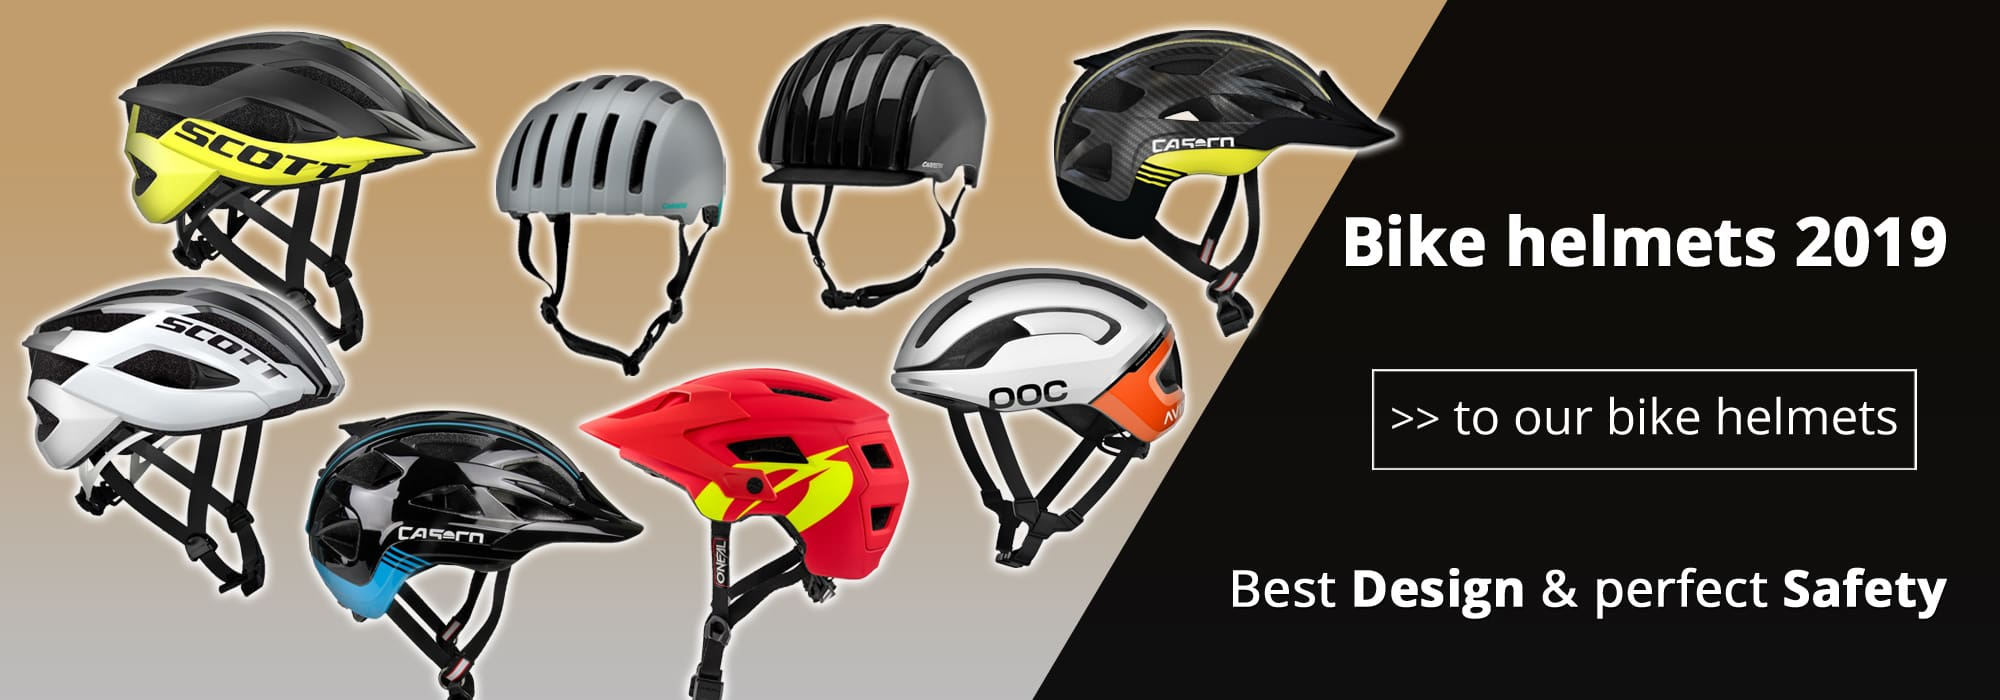 Our bike helmets 2019 offer best design and perfect safety